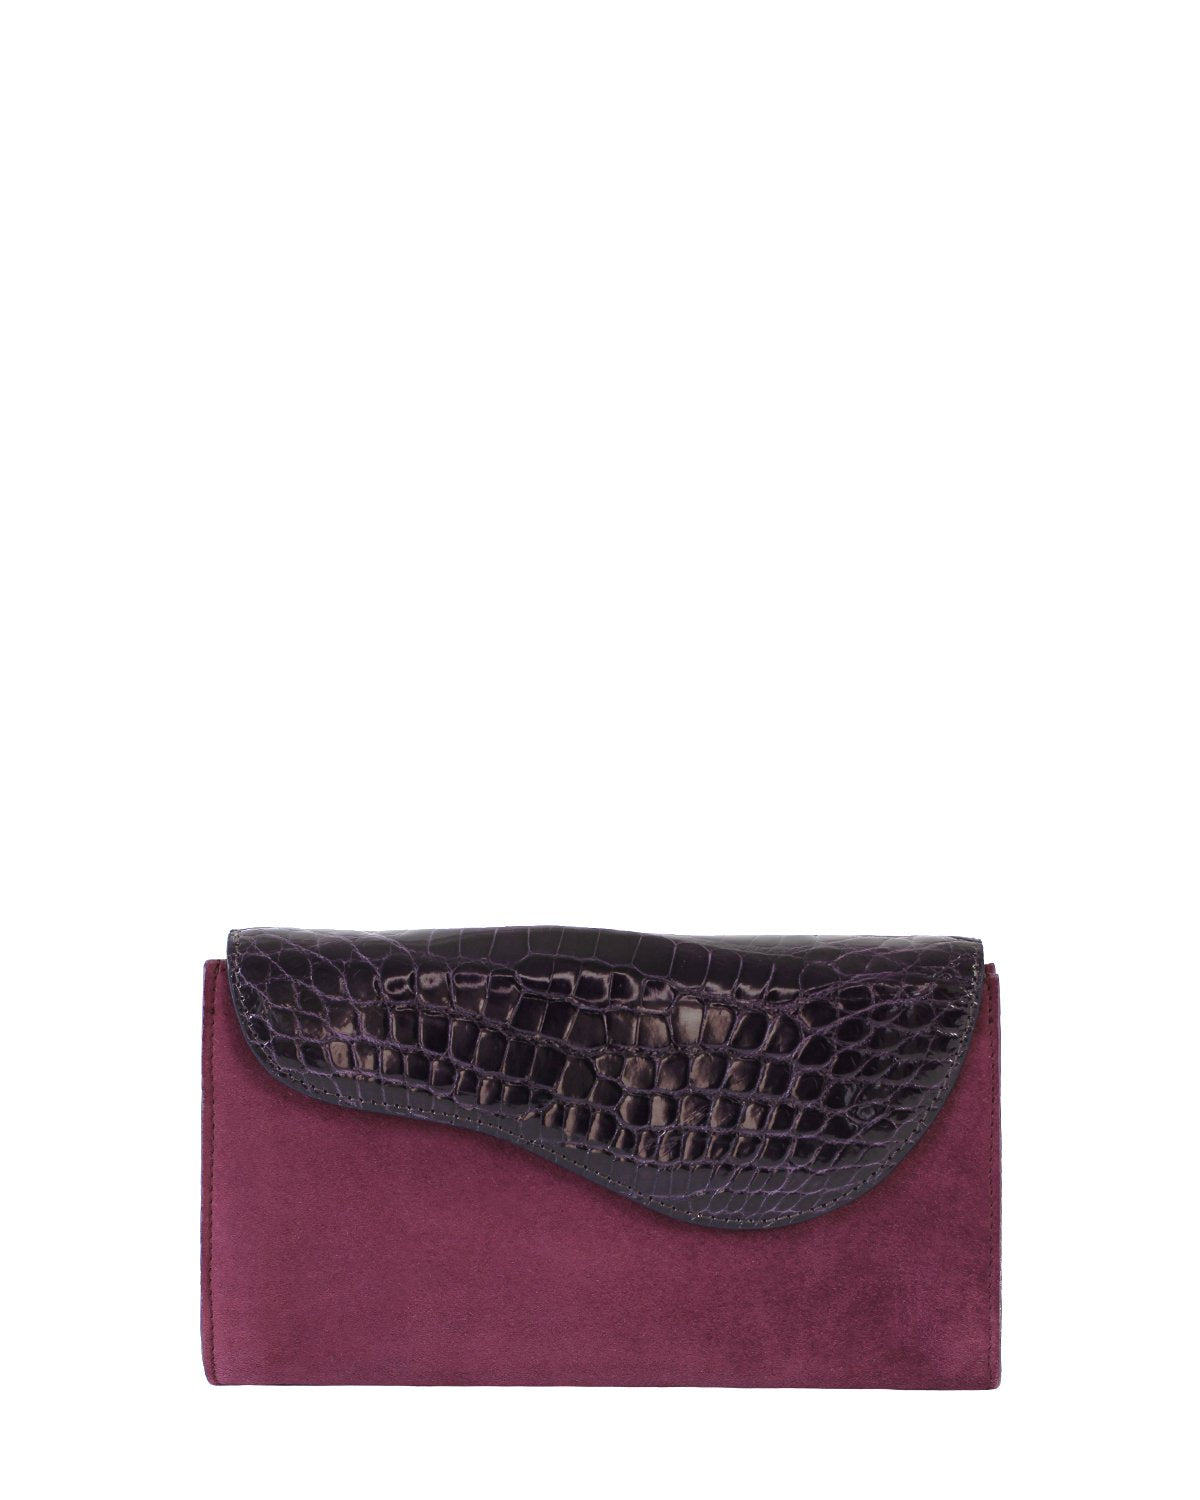 RED VIOLET GRAY ALLIGATOR OSTRICH OSCAR CLUTCH YELLOW GOLD YARA BASHOOR FRONT VIEW